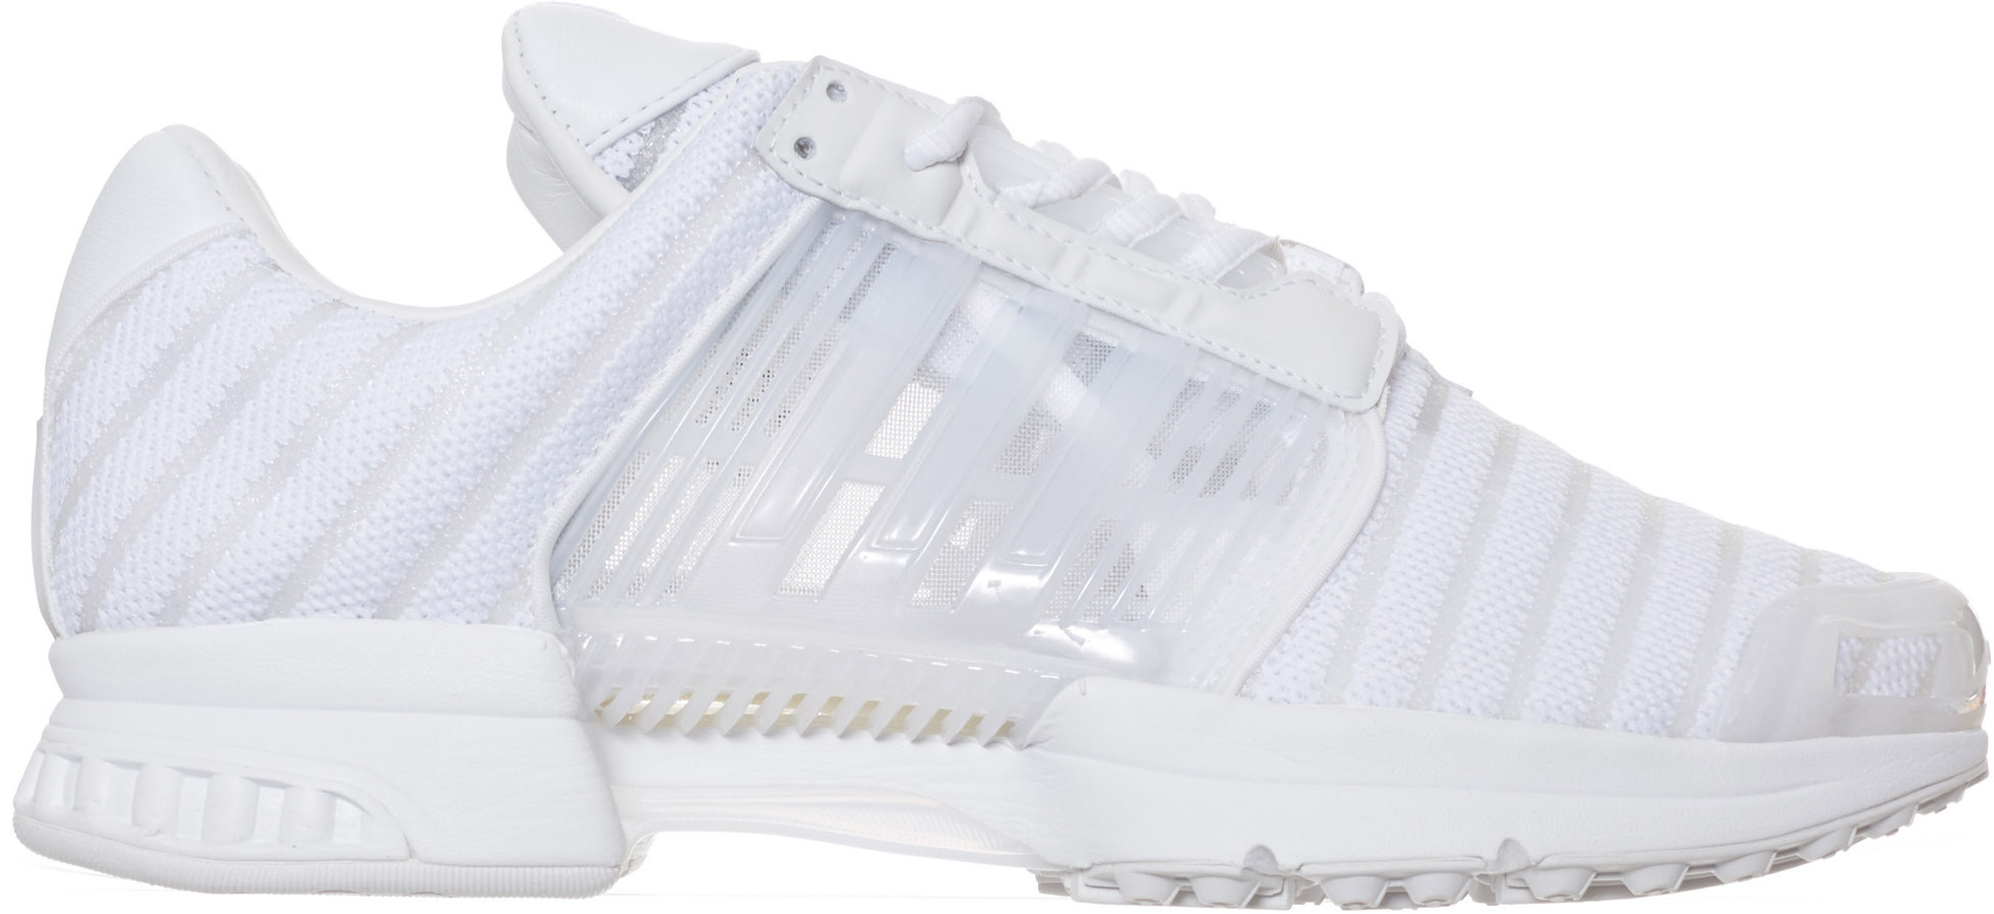 adidas Climacool Wish Sneakerboy Jellyfish